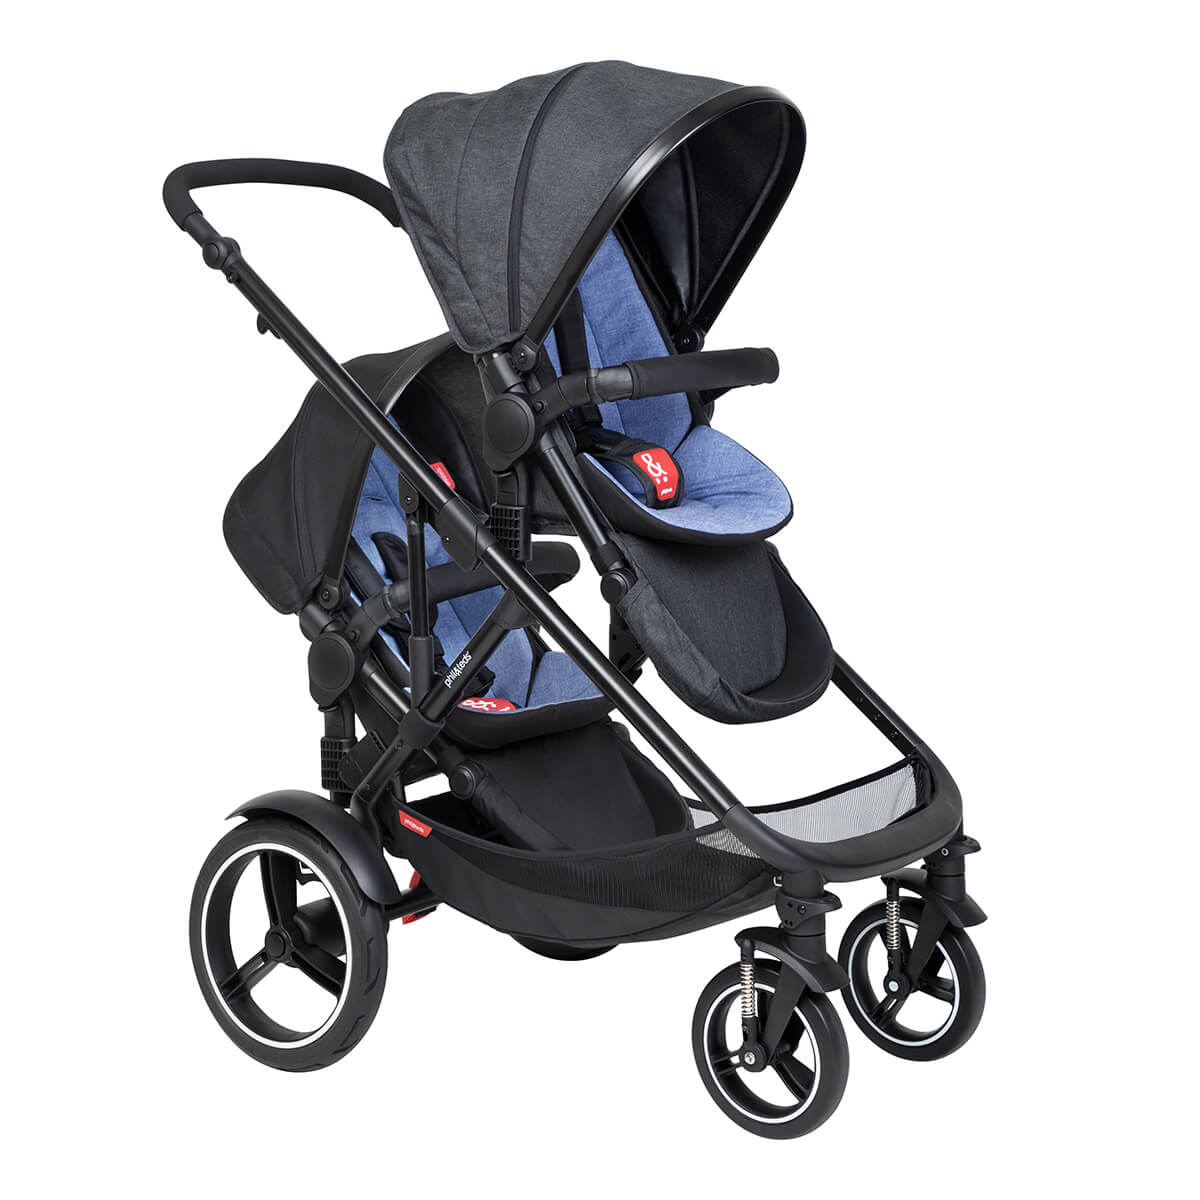 https://cdn.accentuate.io/4509912236109/19466204315842/philteds-voyager-inline-buggy-with-double-kit-in-rear-in-sky-blue-colour-v1626485538203.jpg?1200x1200